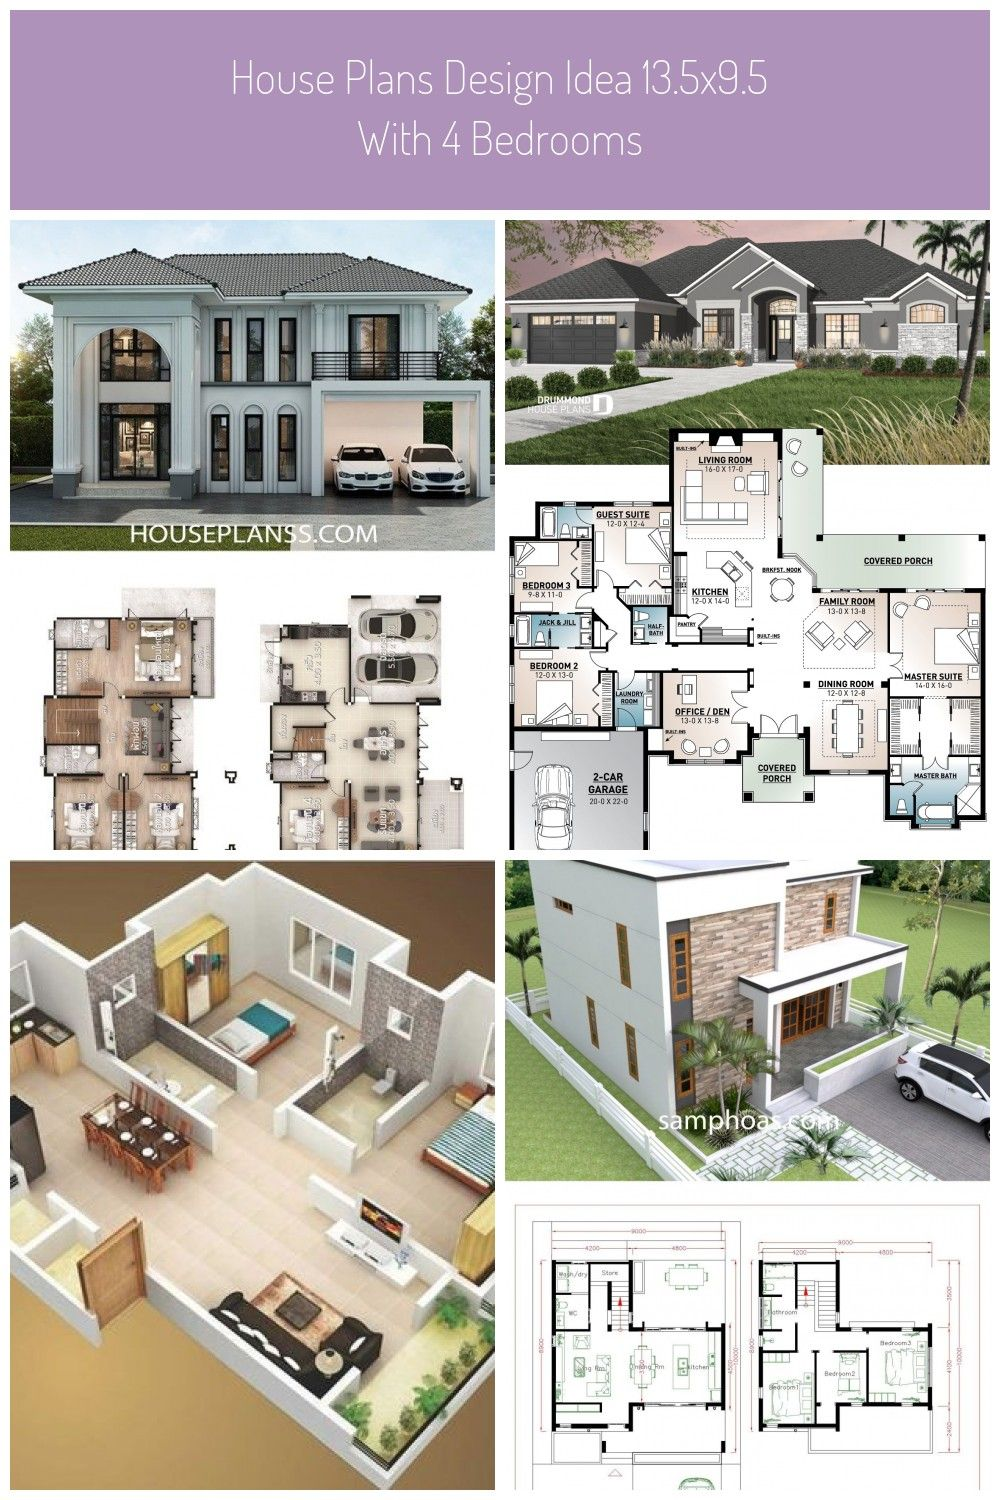 House Plans Design Idea 13 5x9 5 With 4 Bedrooms Home Ideassearch House Design Plans House Plans Design Idea 1 In 2020 Home Design Plans House Plans Architect House